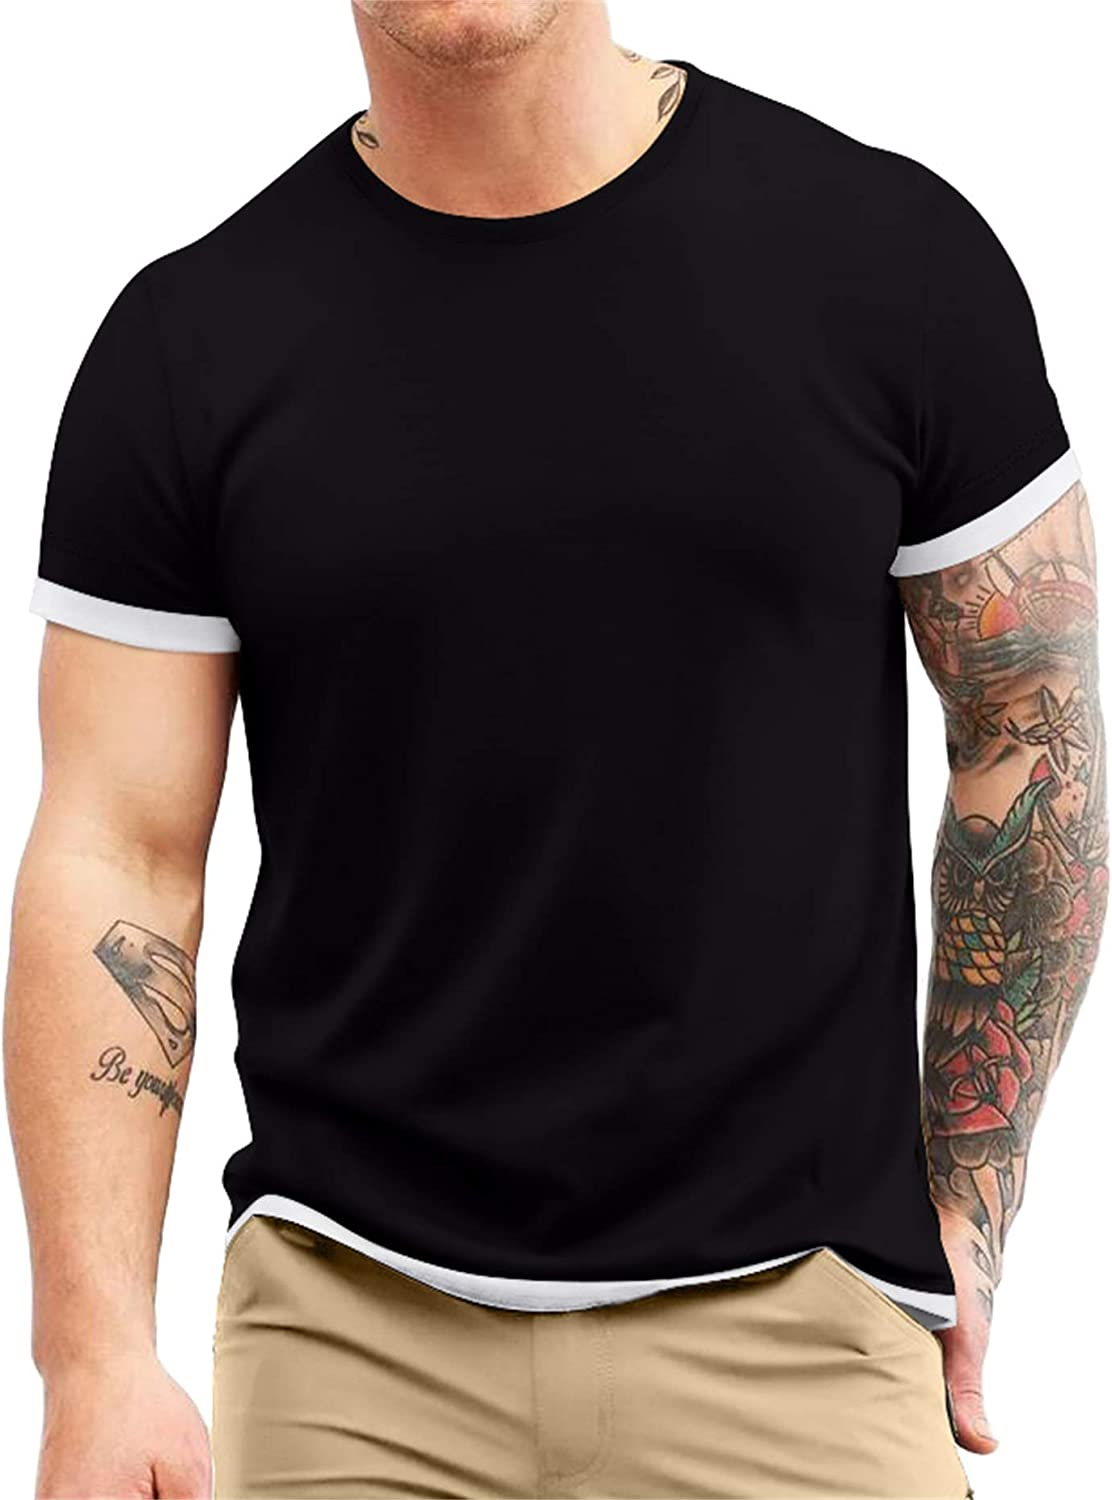 Aiyino Men's S-5XL Short Sleeve Athletic T-Shirt Classic Top Casual Workout Sports Summer Shirts